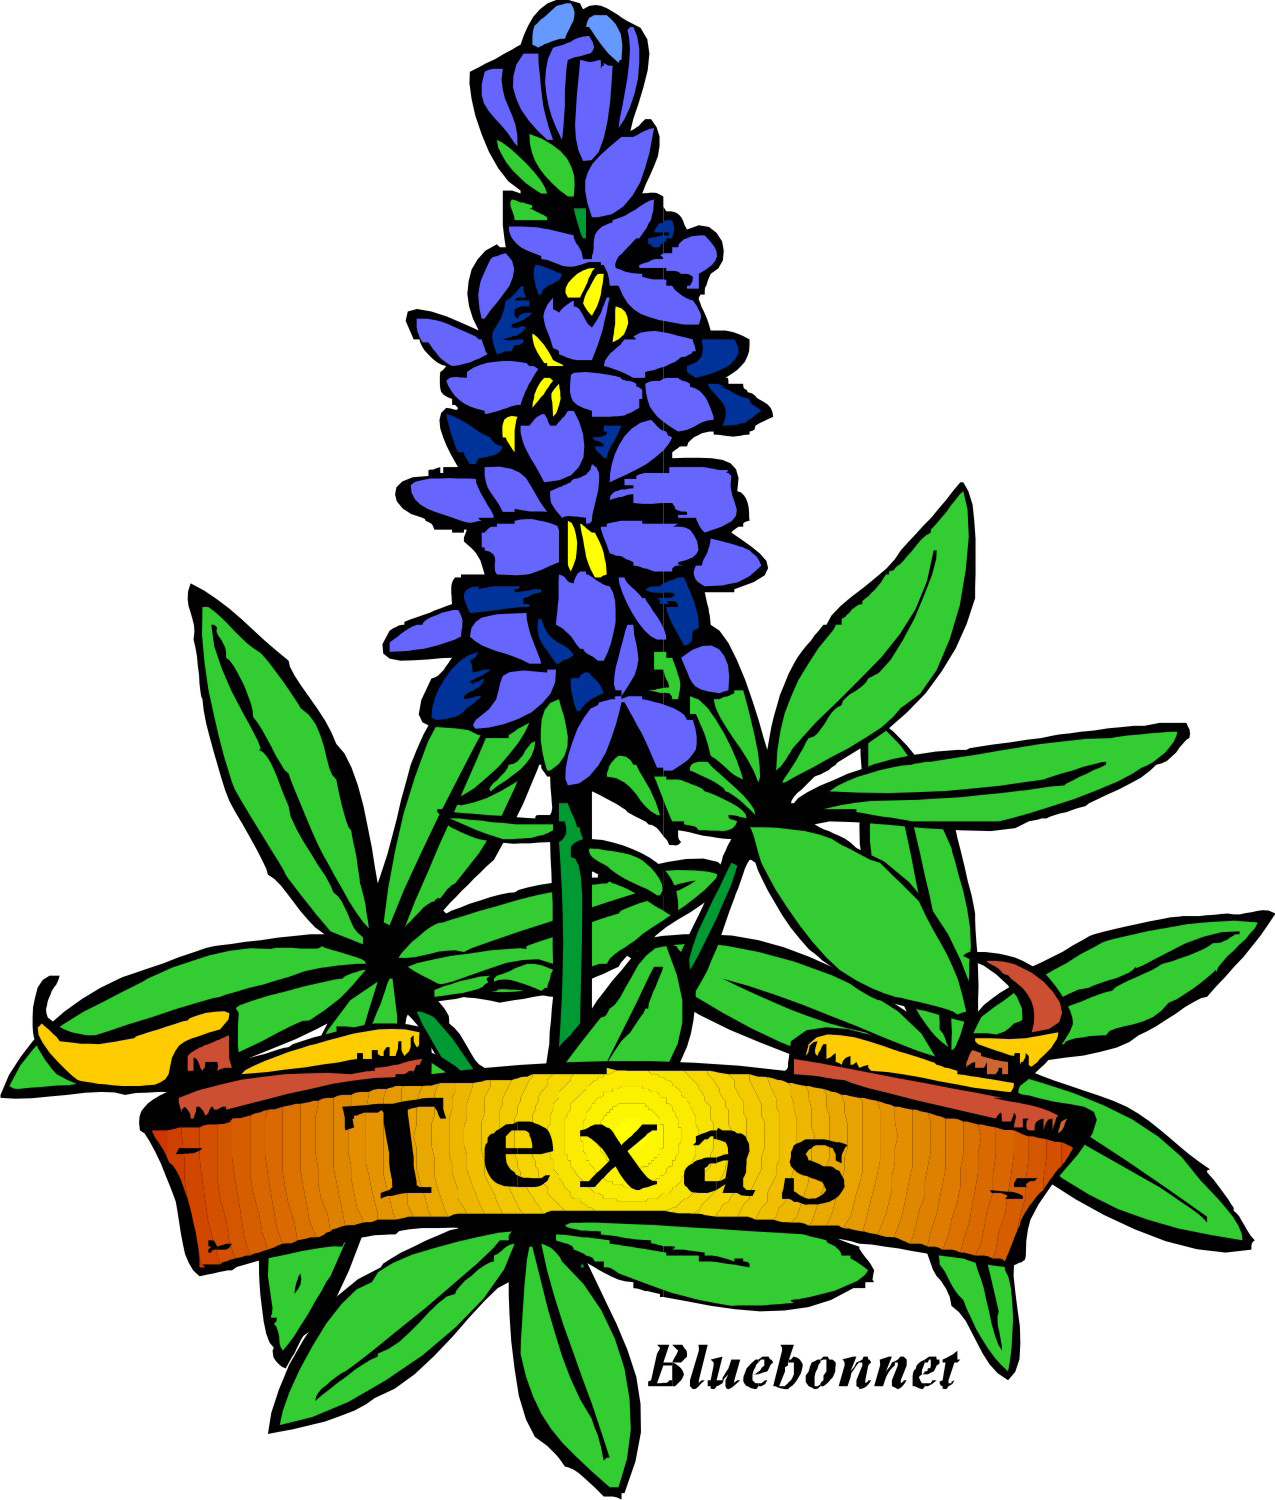 image free library Texas bluebonnet clipart. Theme day camp shac